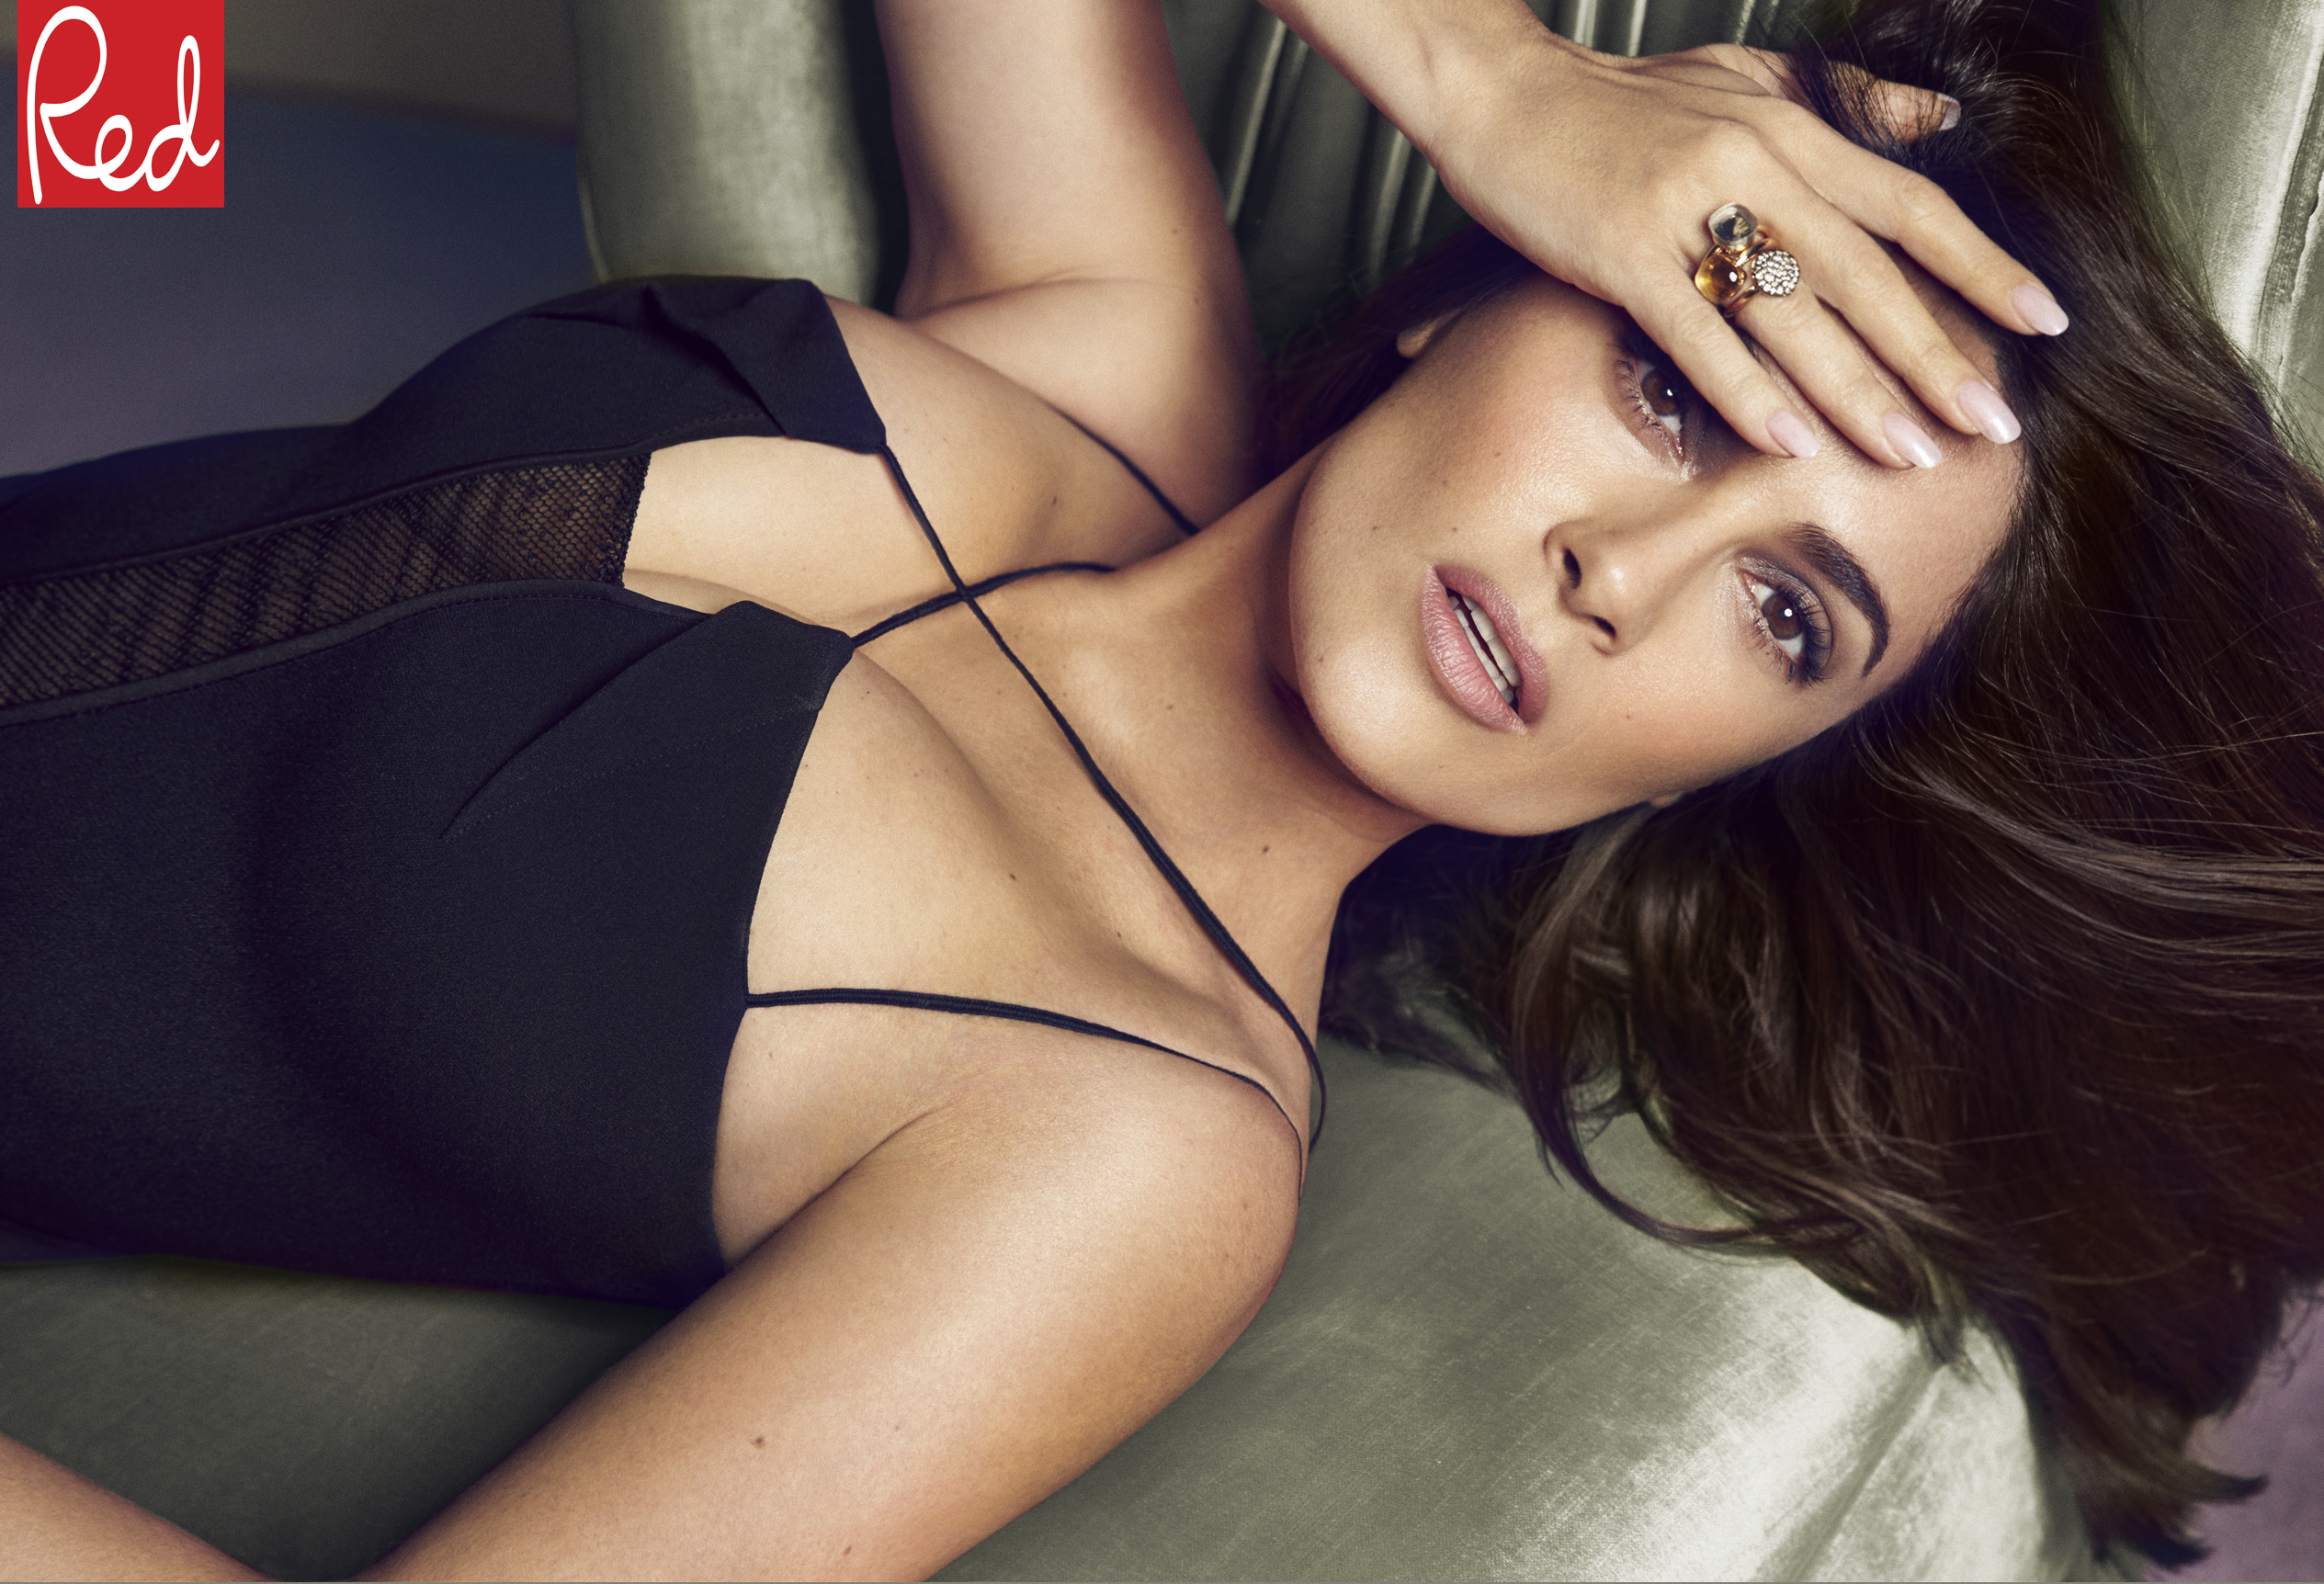 Salma Hayek | Red cover interview - Red Online